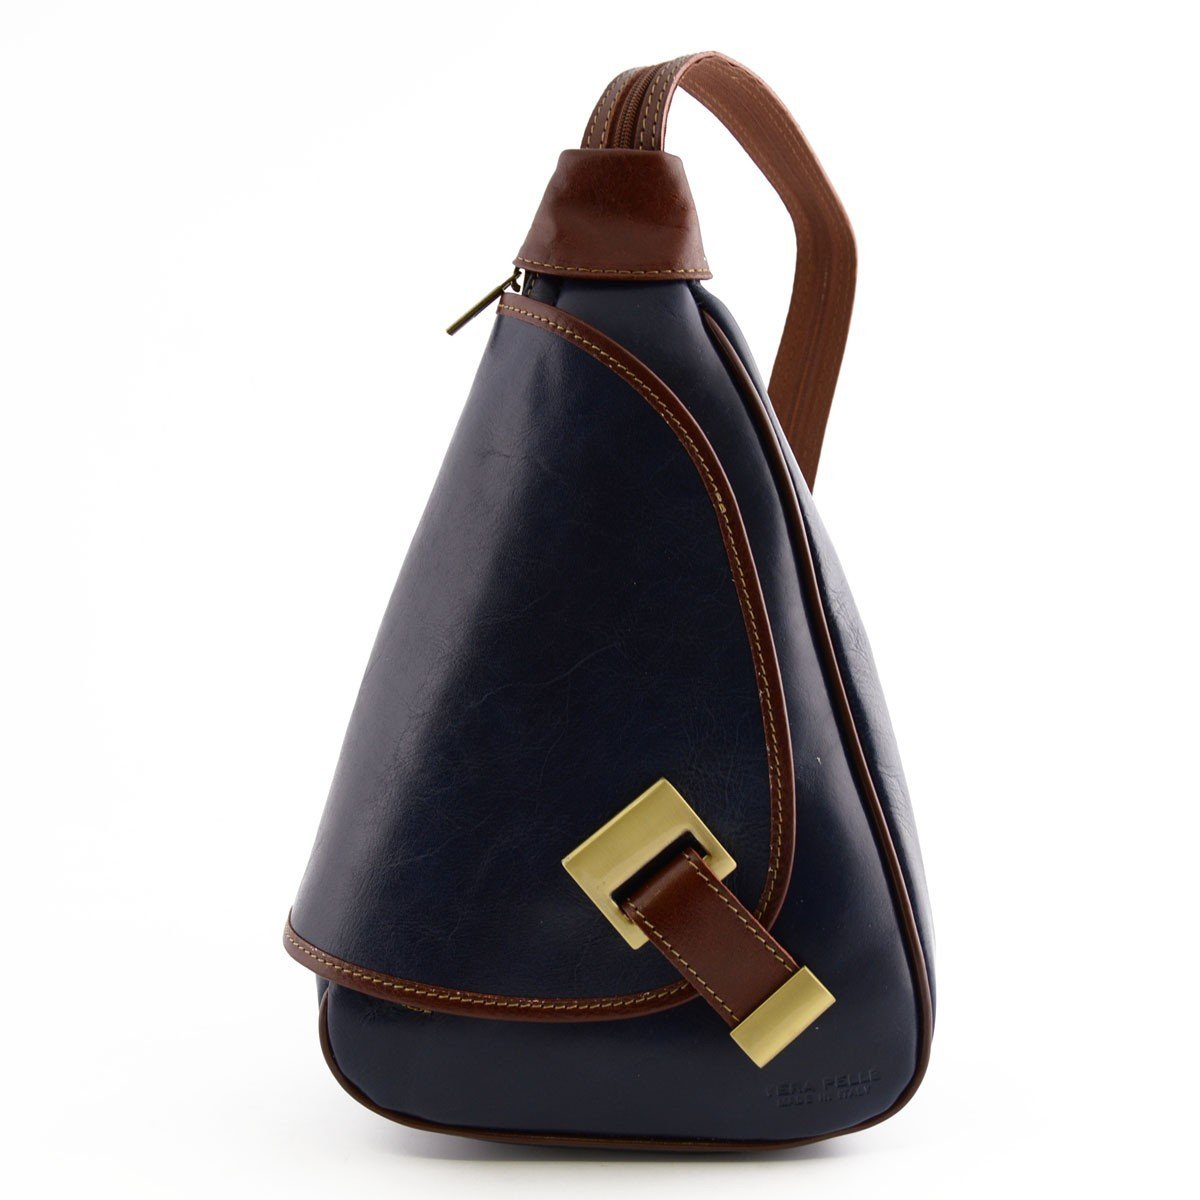 Made In Italy Woman Leather Backpack Color Blue And Brown - Backpack   B016VSTI84